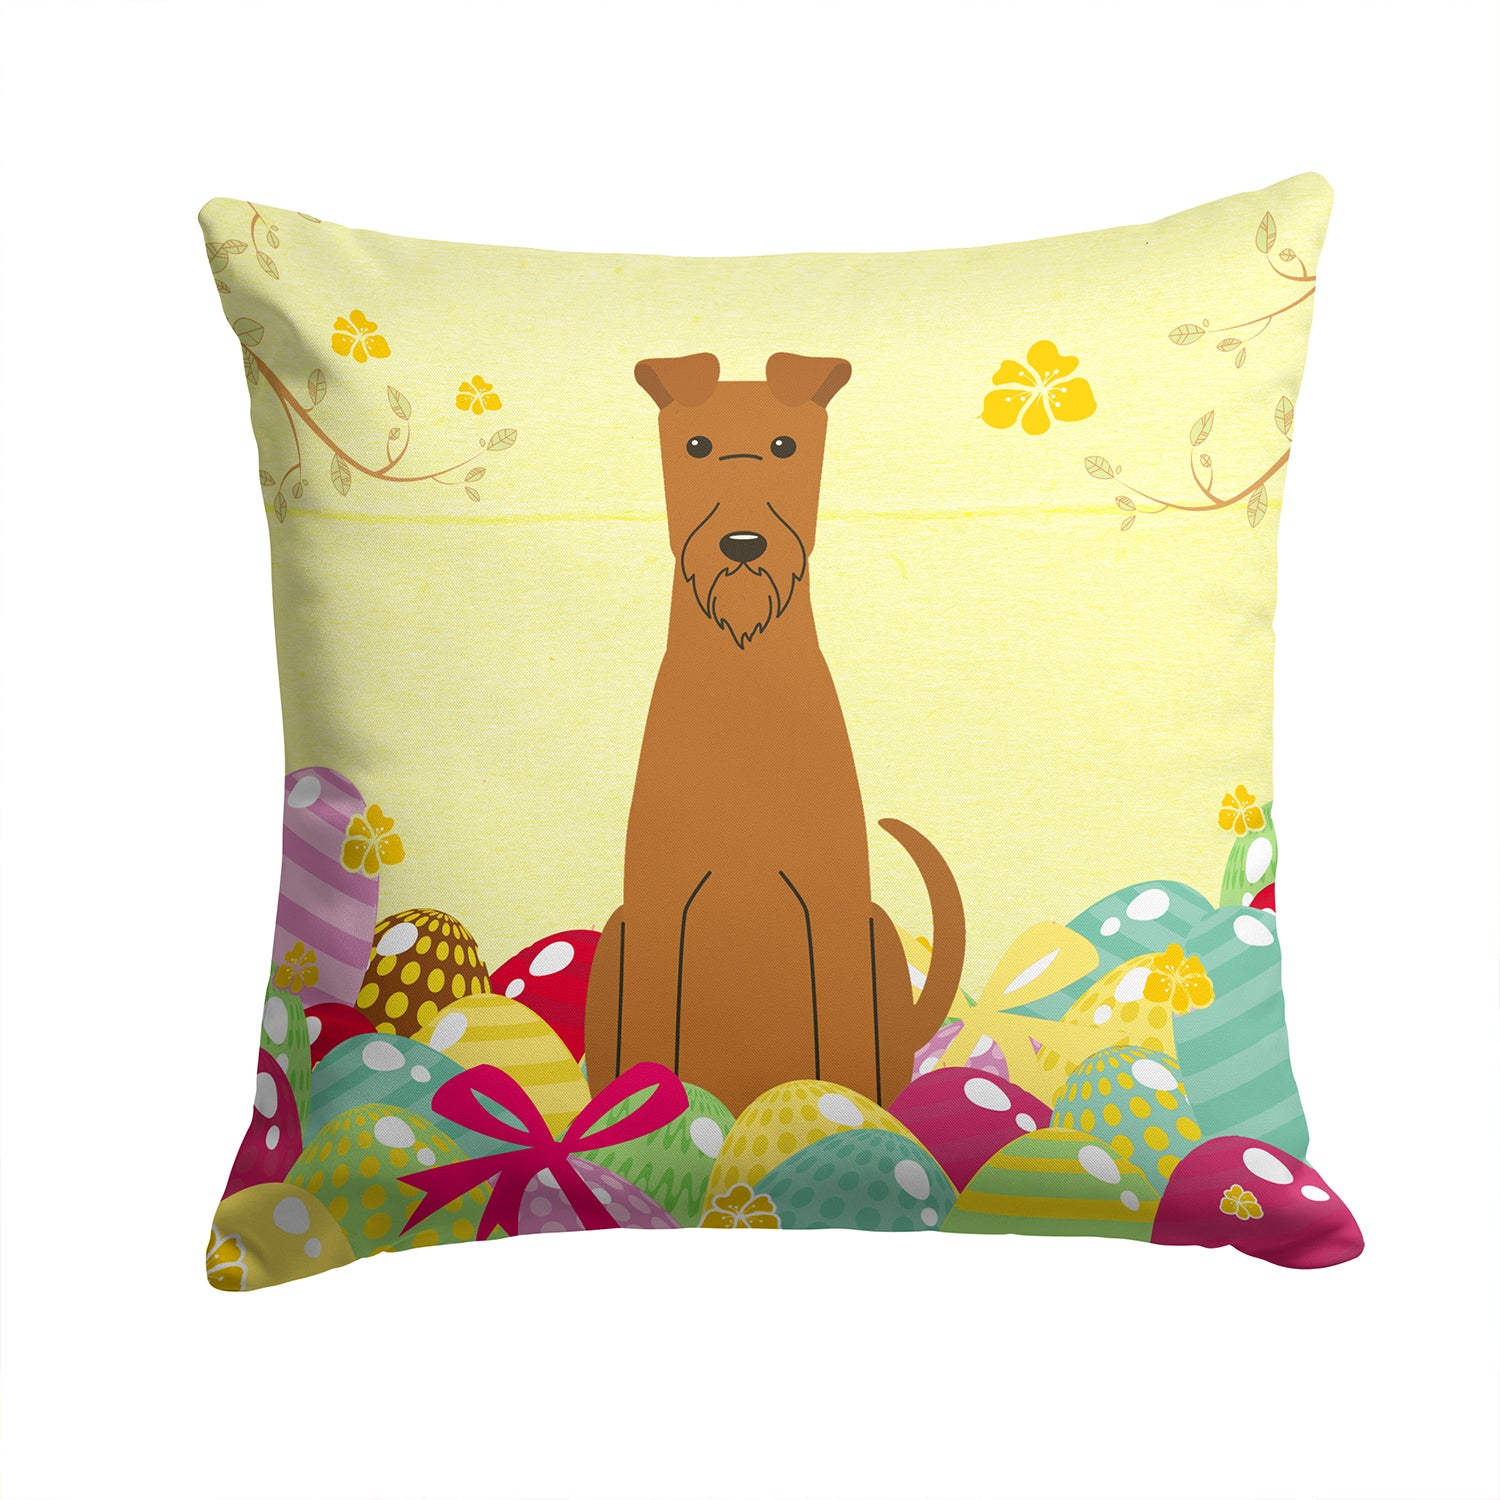 Easter Eggs Irish Terrier Fabric Decorative Pillow BB6062PW1414 by Caroline's Treasures